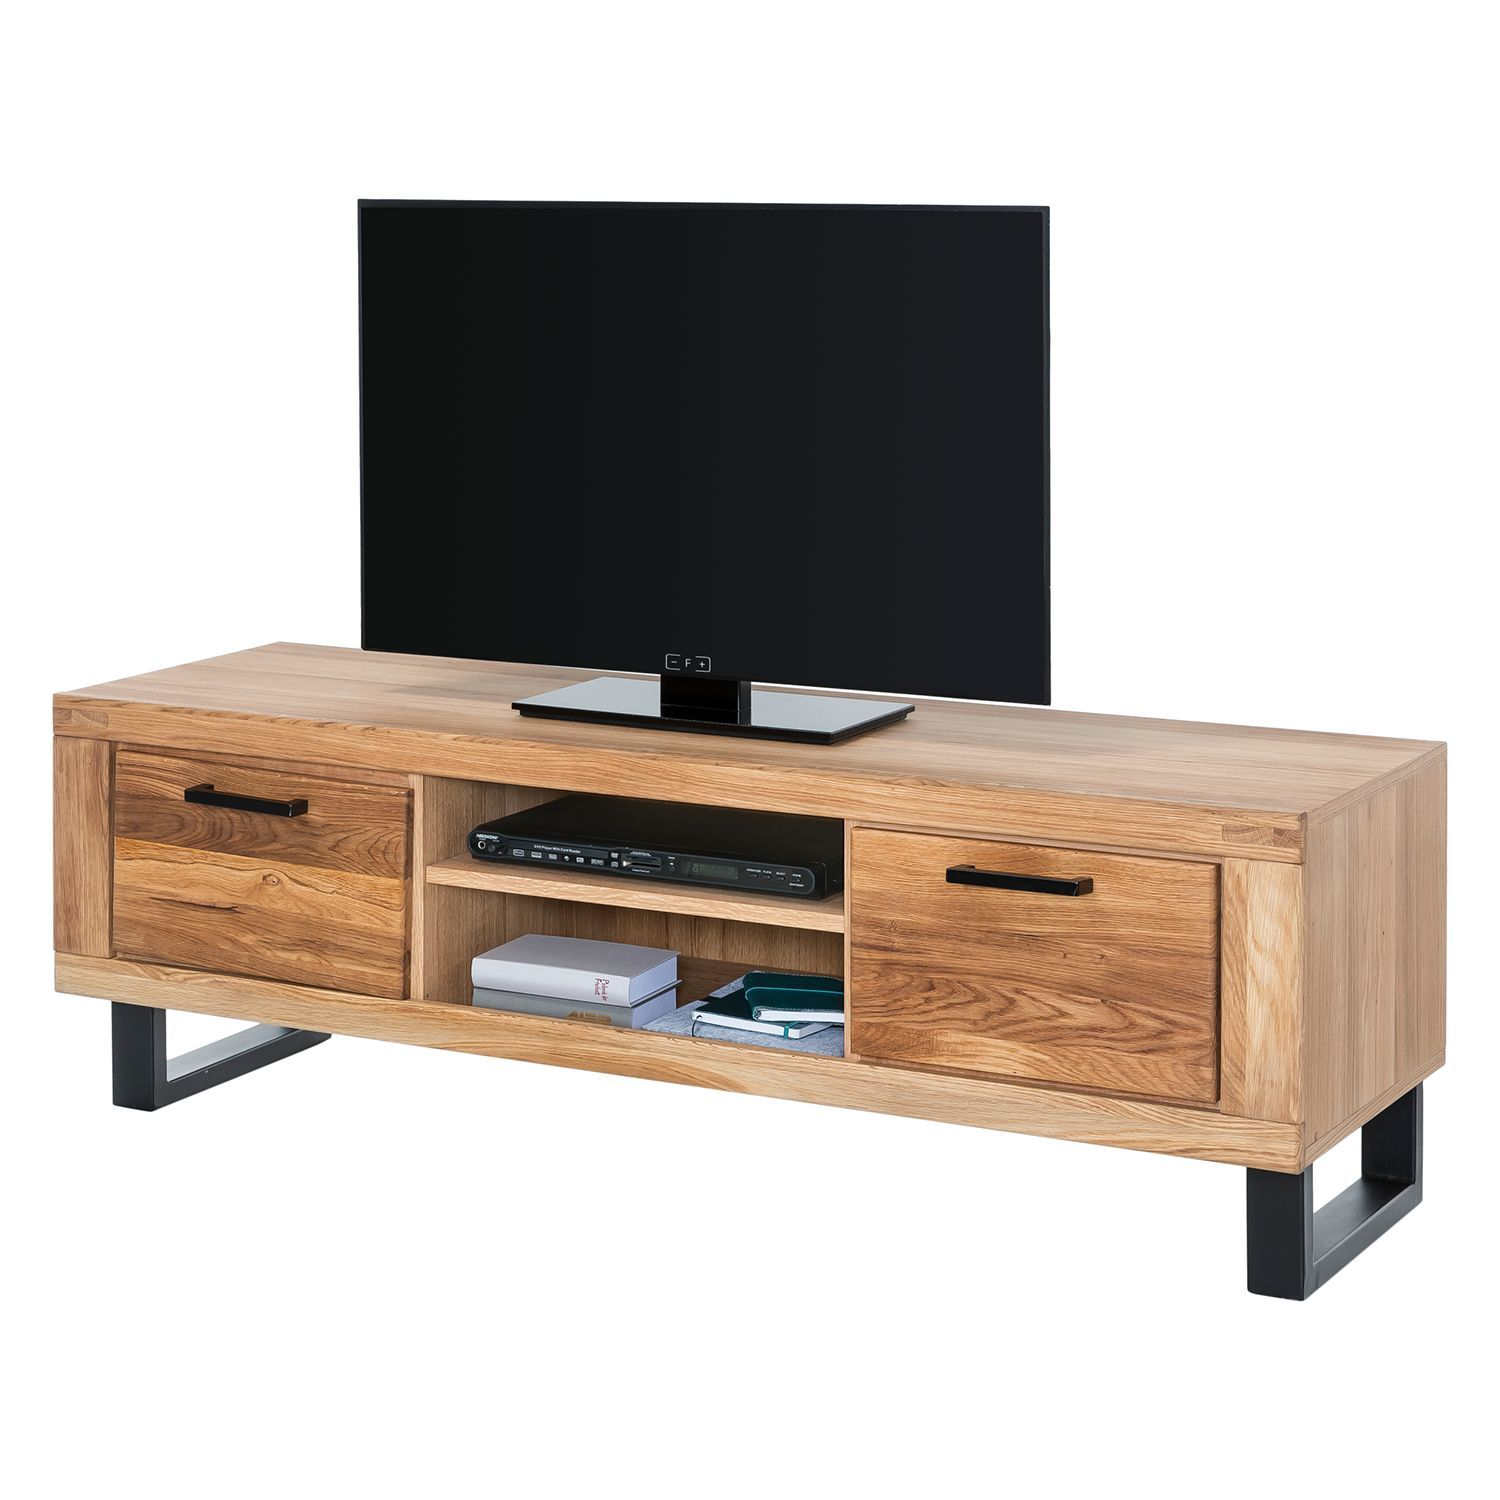 Tv Sideboard Versenkbar Tv Lowboard Loxton Ii Products Cabinet Furniture Home Decor Und